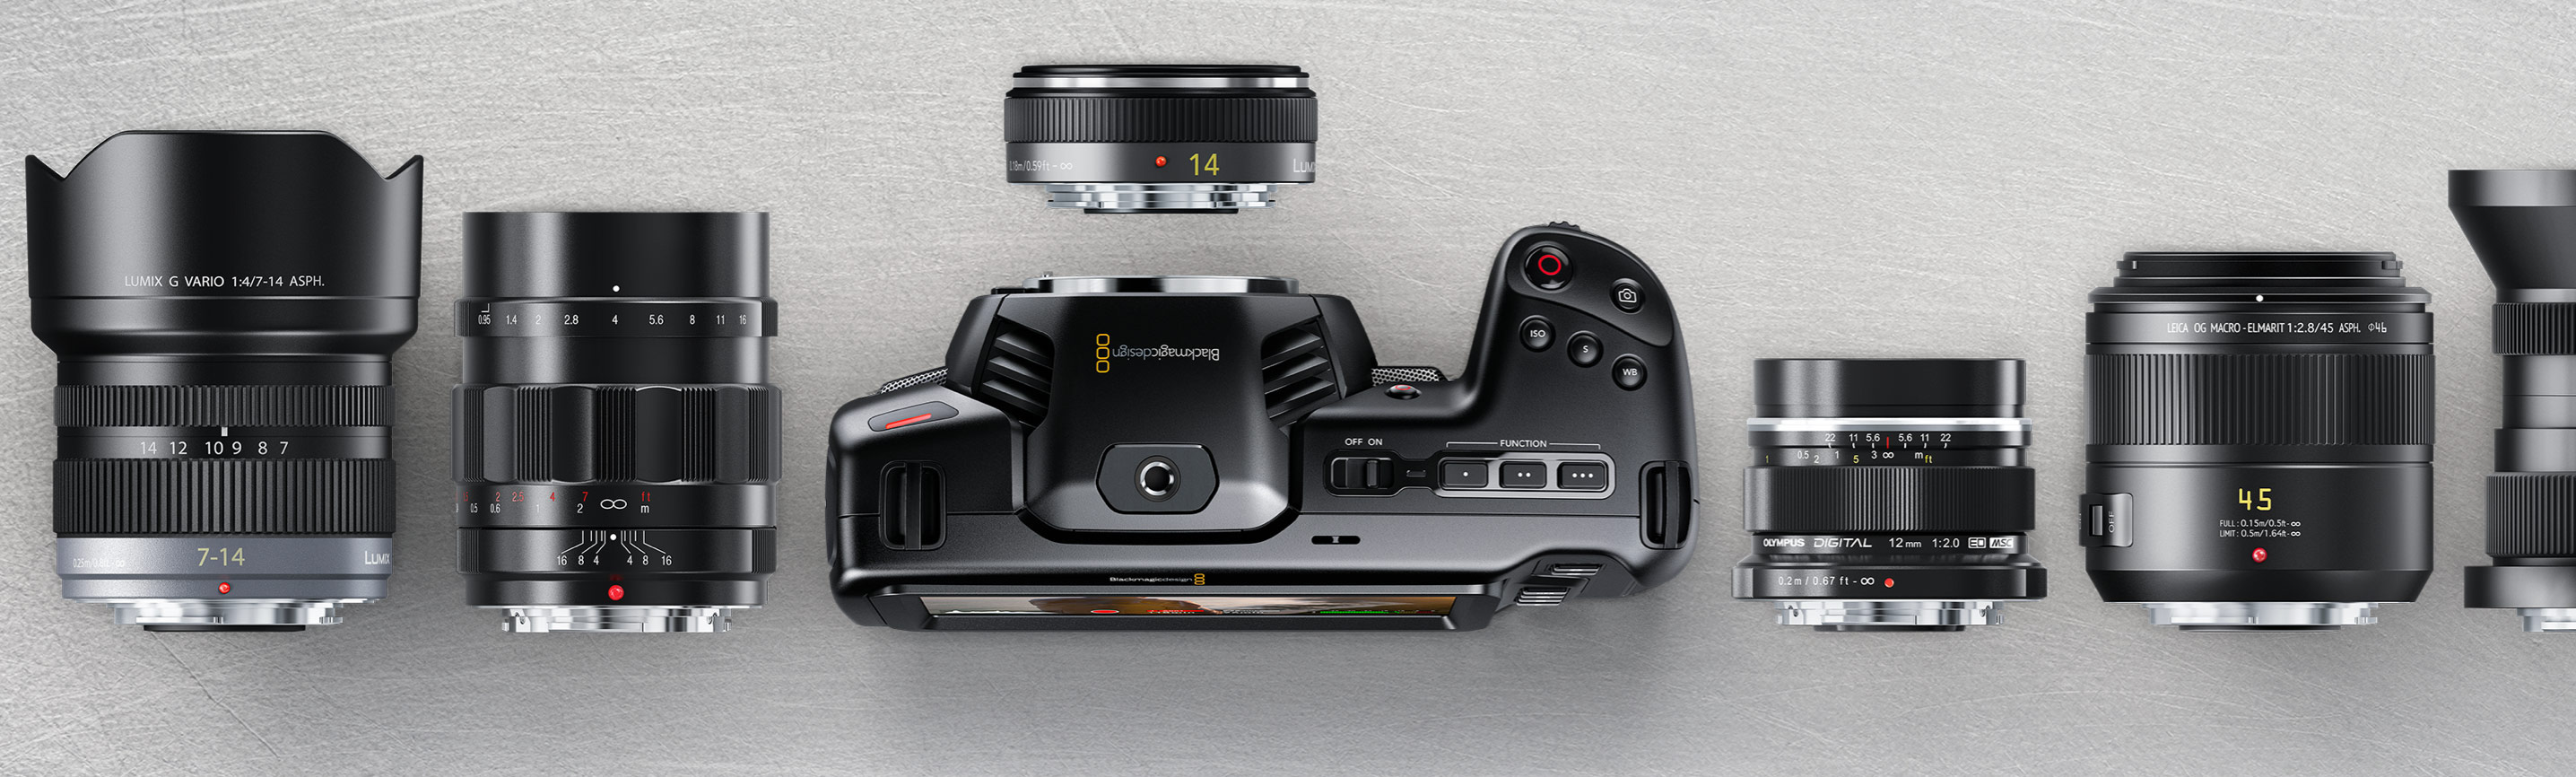 Blackmagic Pocket Cinema Camera 4K obiektywy